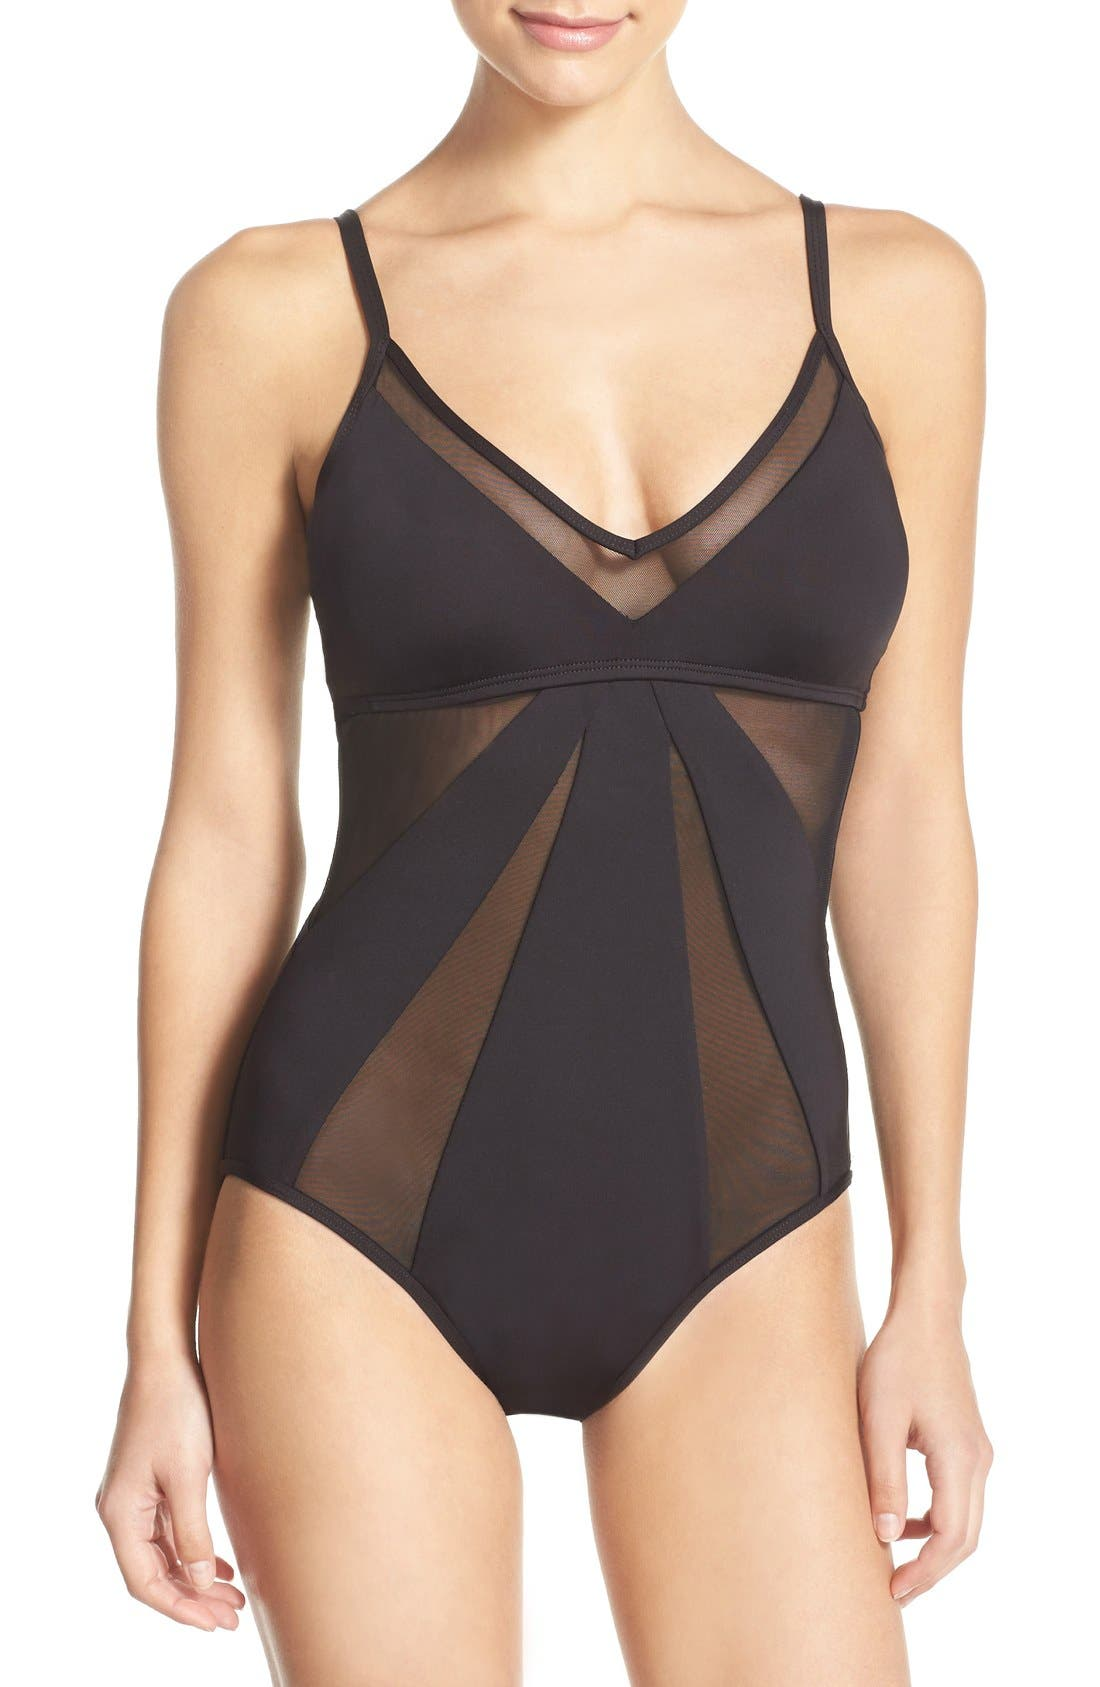 KENNETH COLE NEW YORK 'Sheer Satisfaction' One-Piece Swimsuit